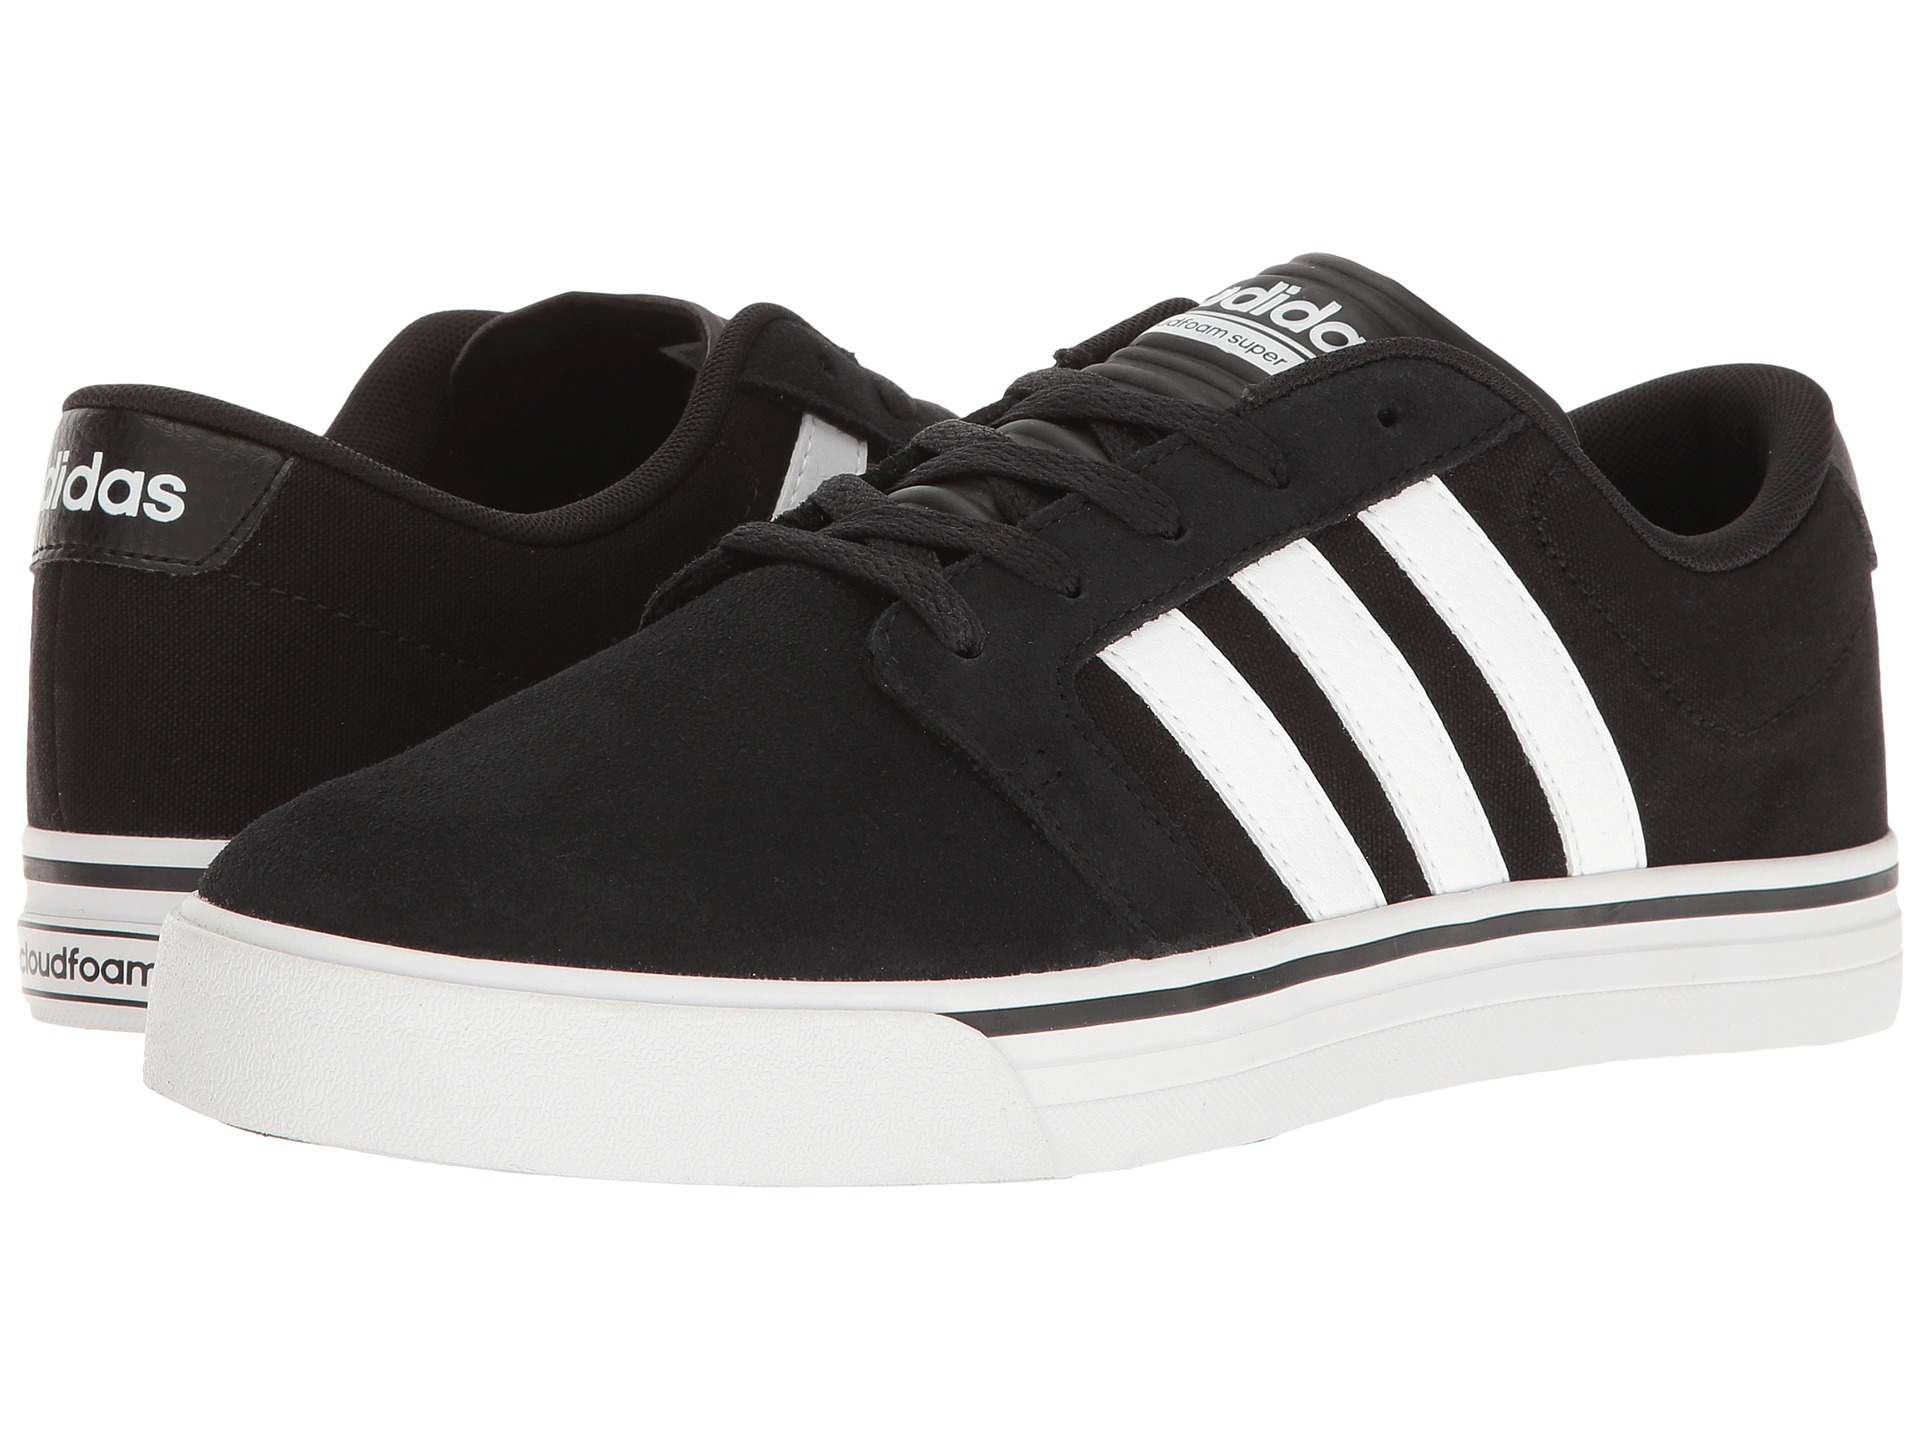 adidas Cloudfoam Super Skate at 6pm.com